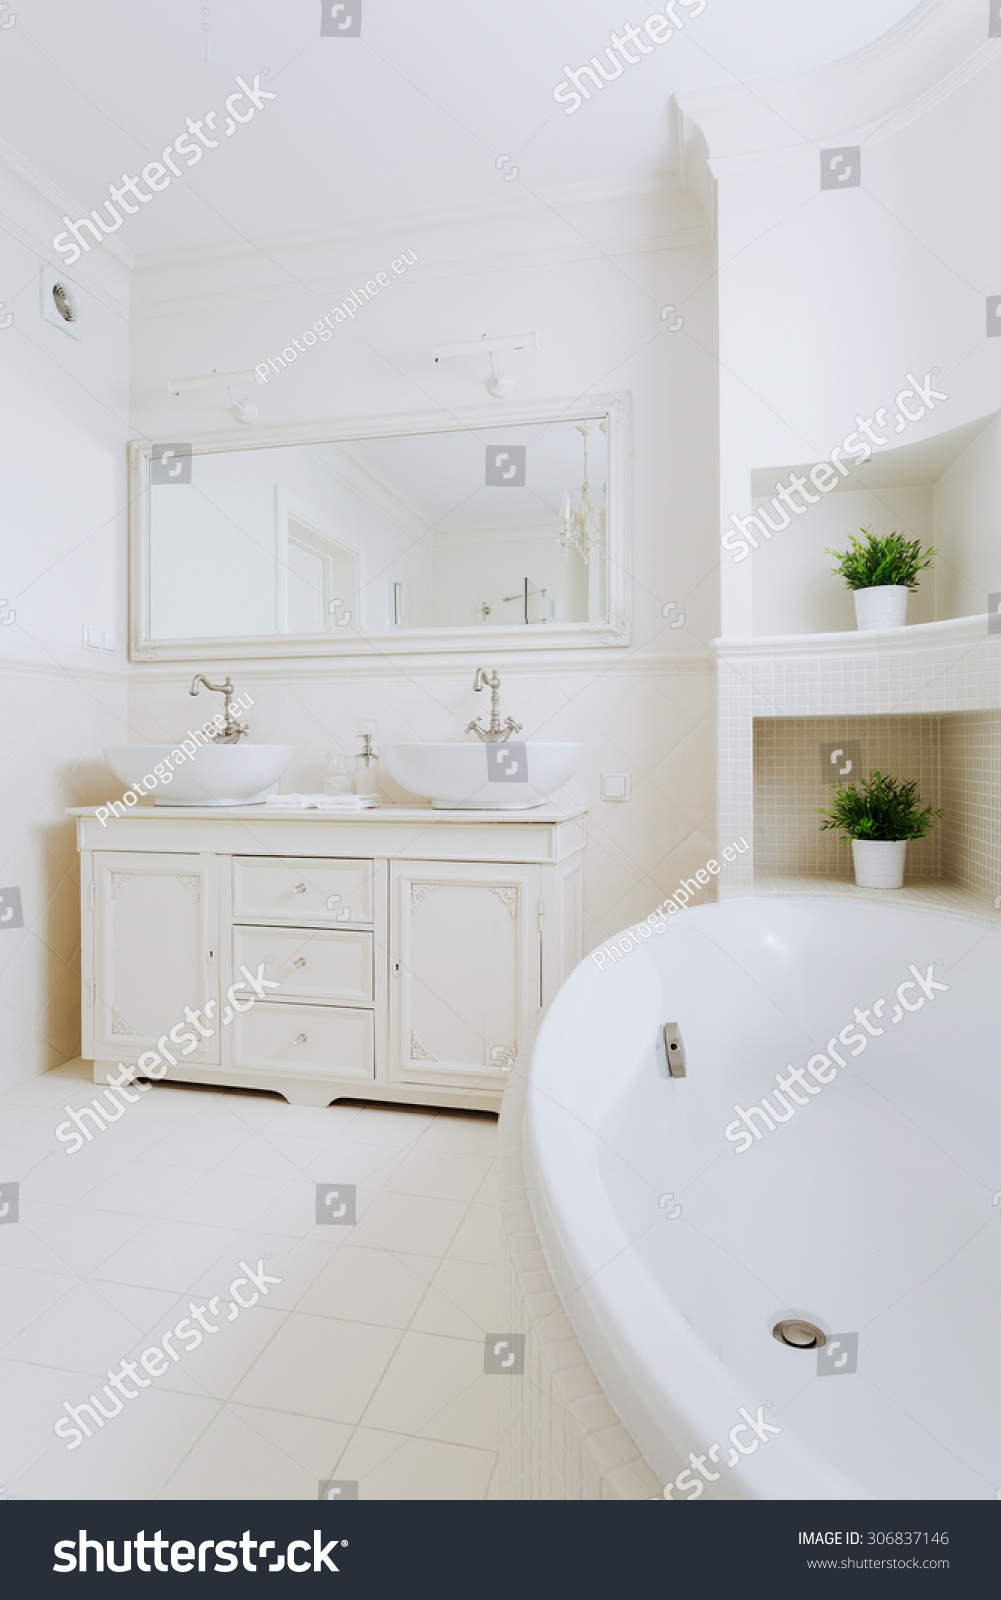 Washbasin Bathroom sink  All architecture and design